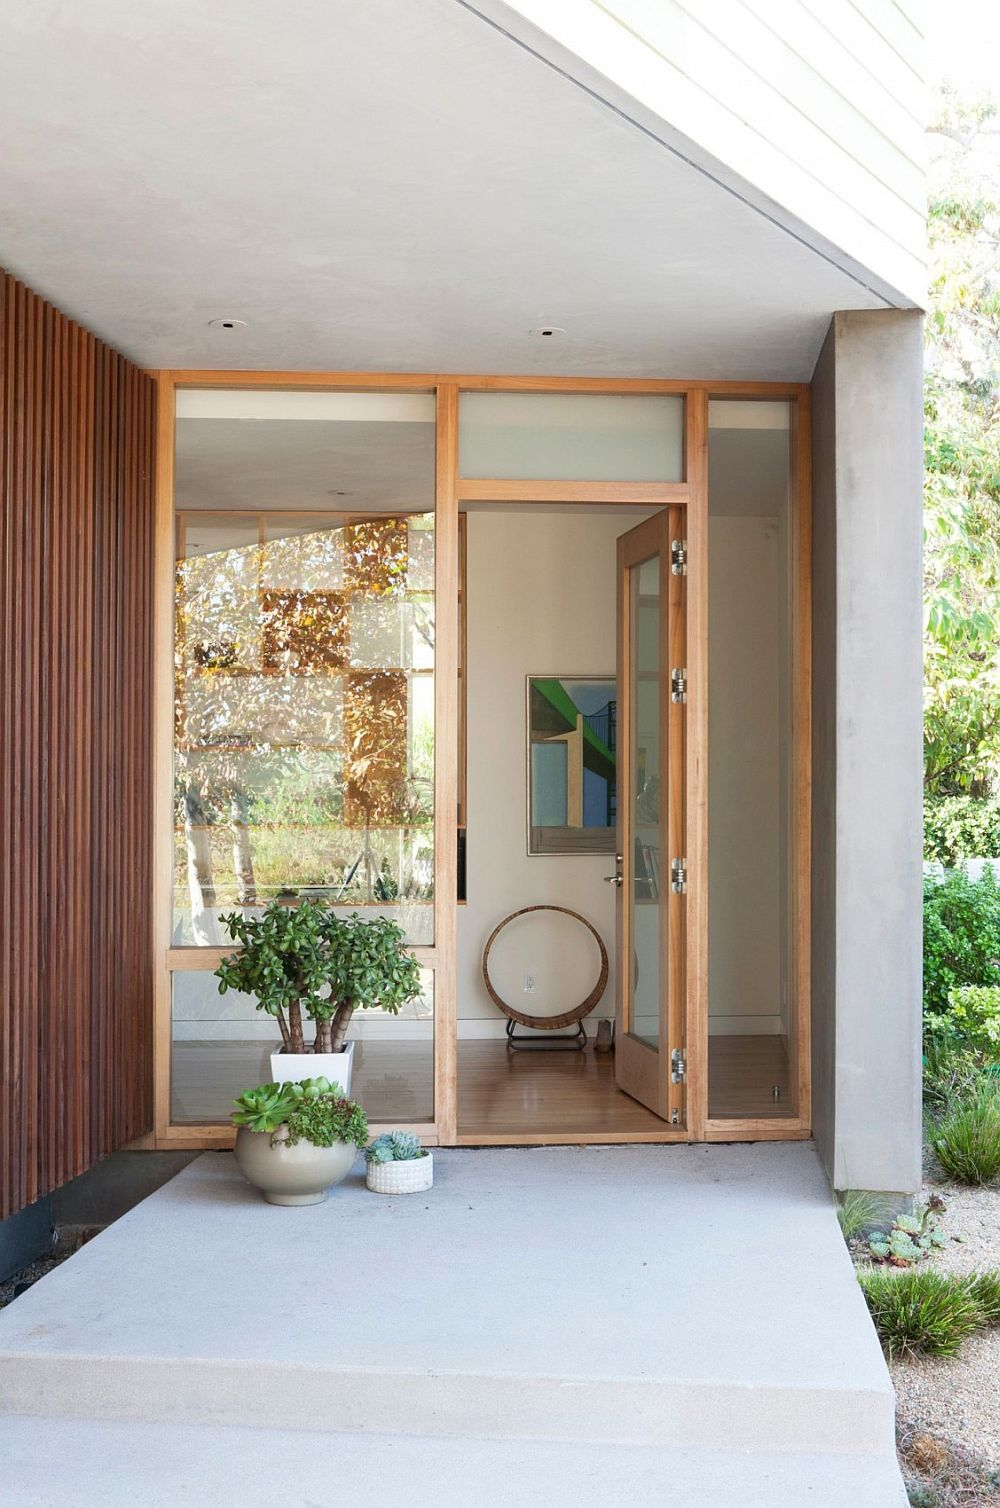 Entryway to the relaxing modern home in Santa Monica, California with wooden slats and potted plants